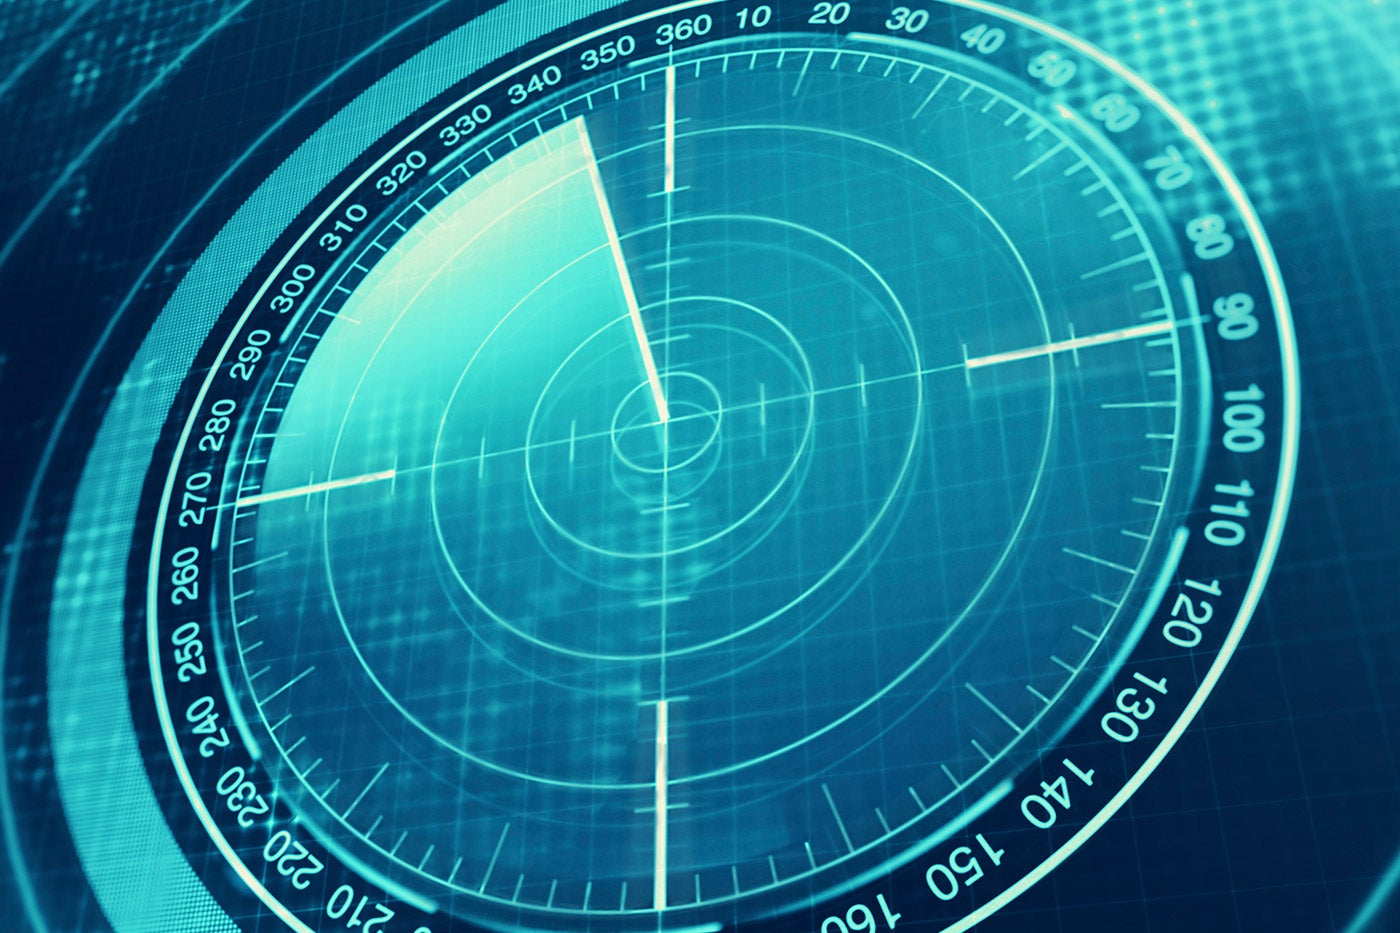 Industrial Cybersecurity Needs Broad & Deep OT/IoT Threat Visibility